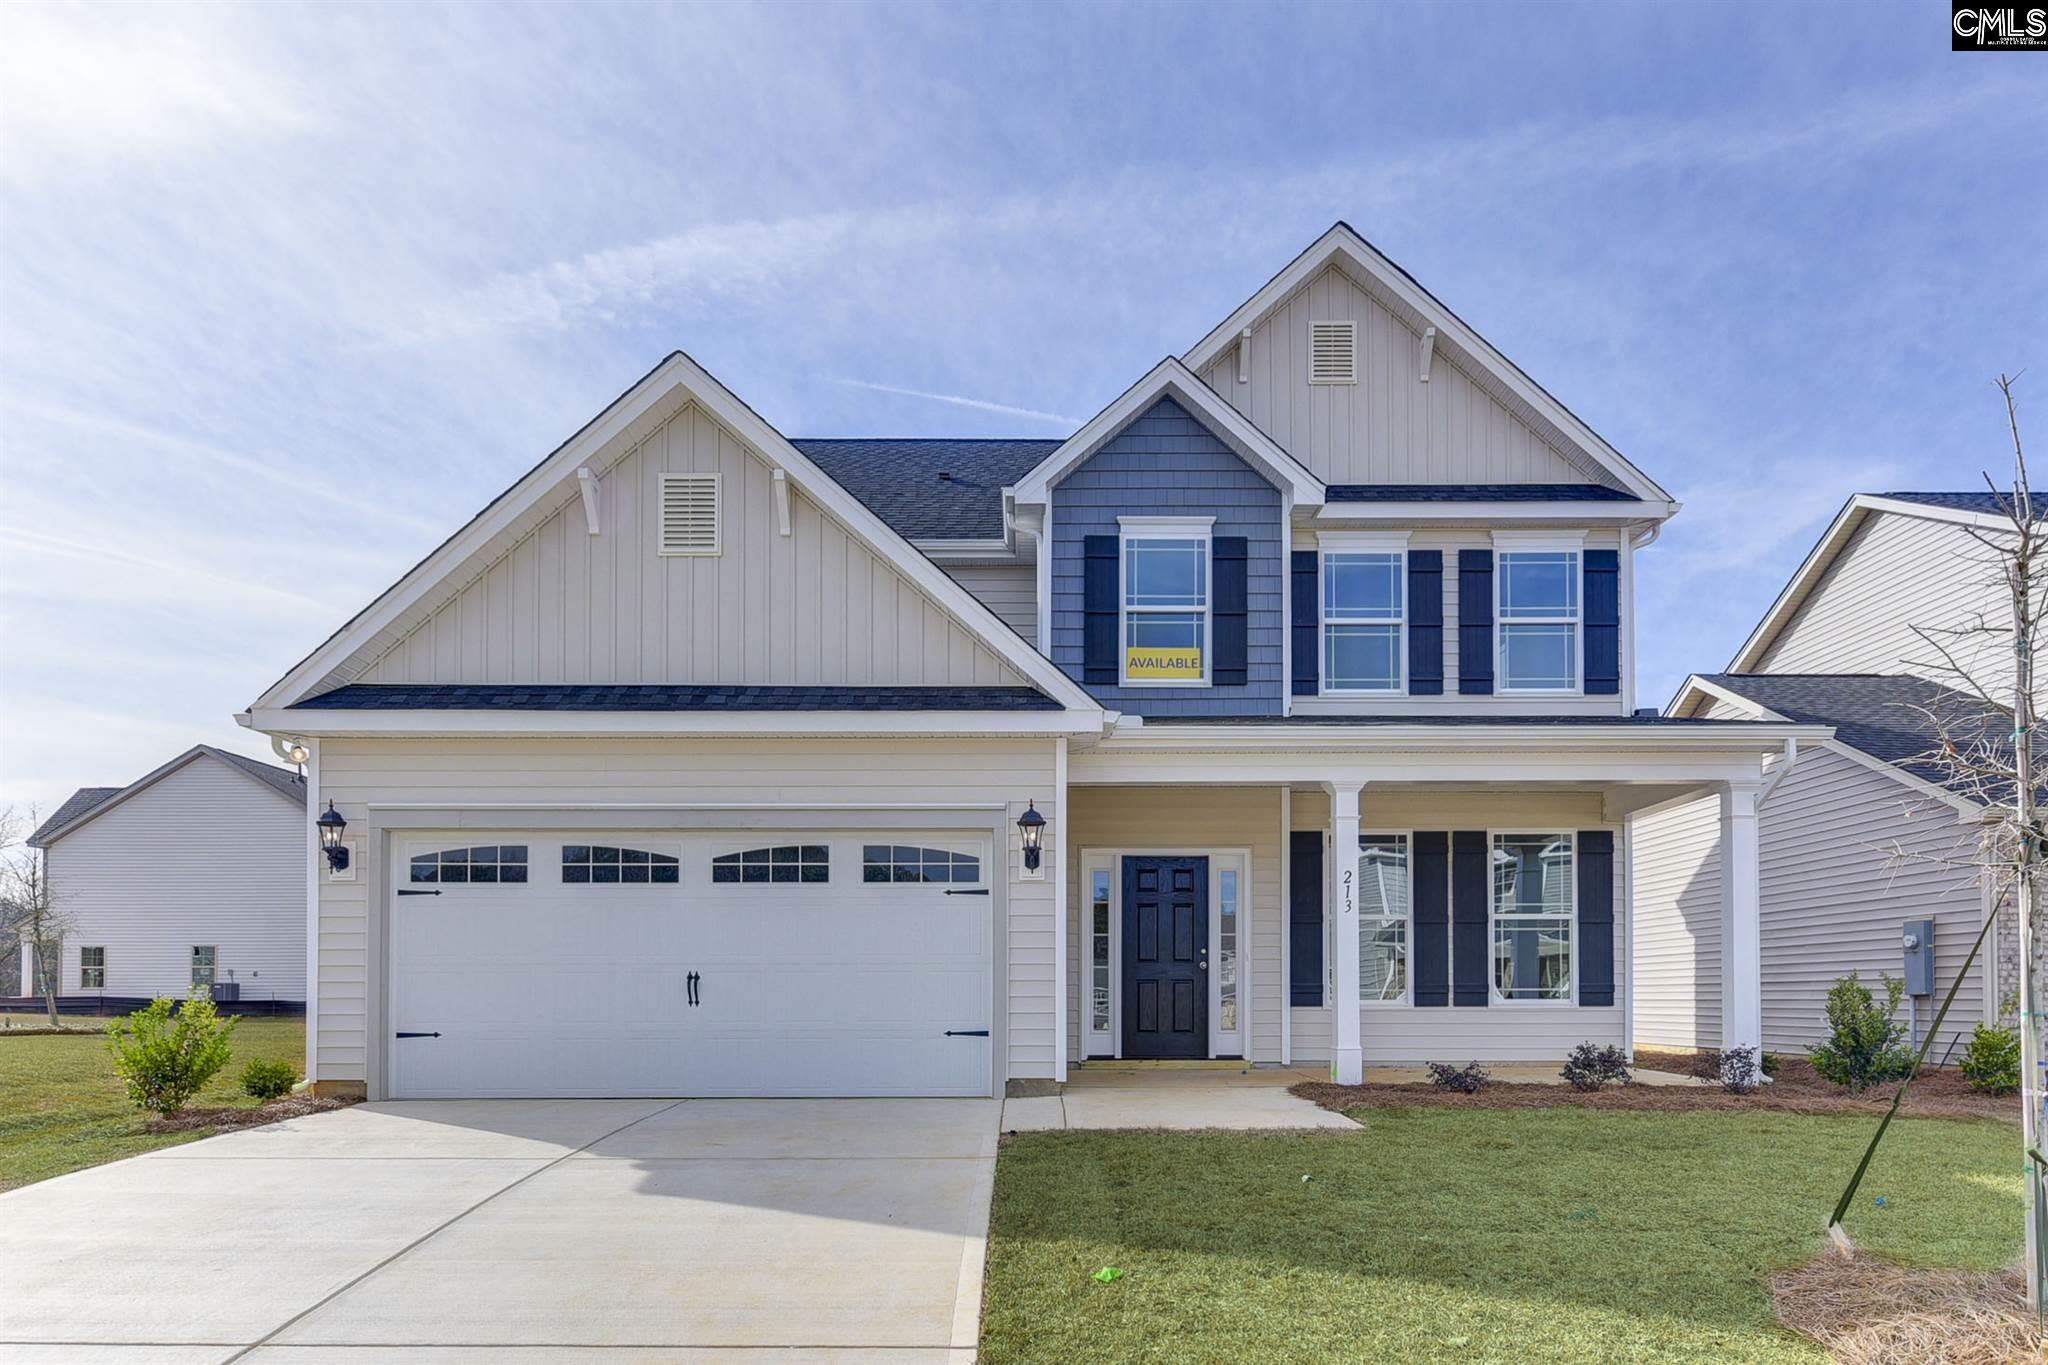 257 Wessinger Farms Chapin, SC 29036